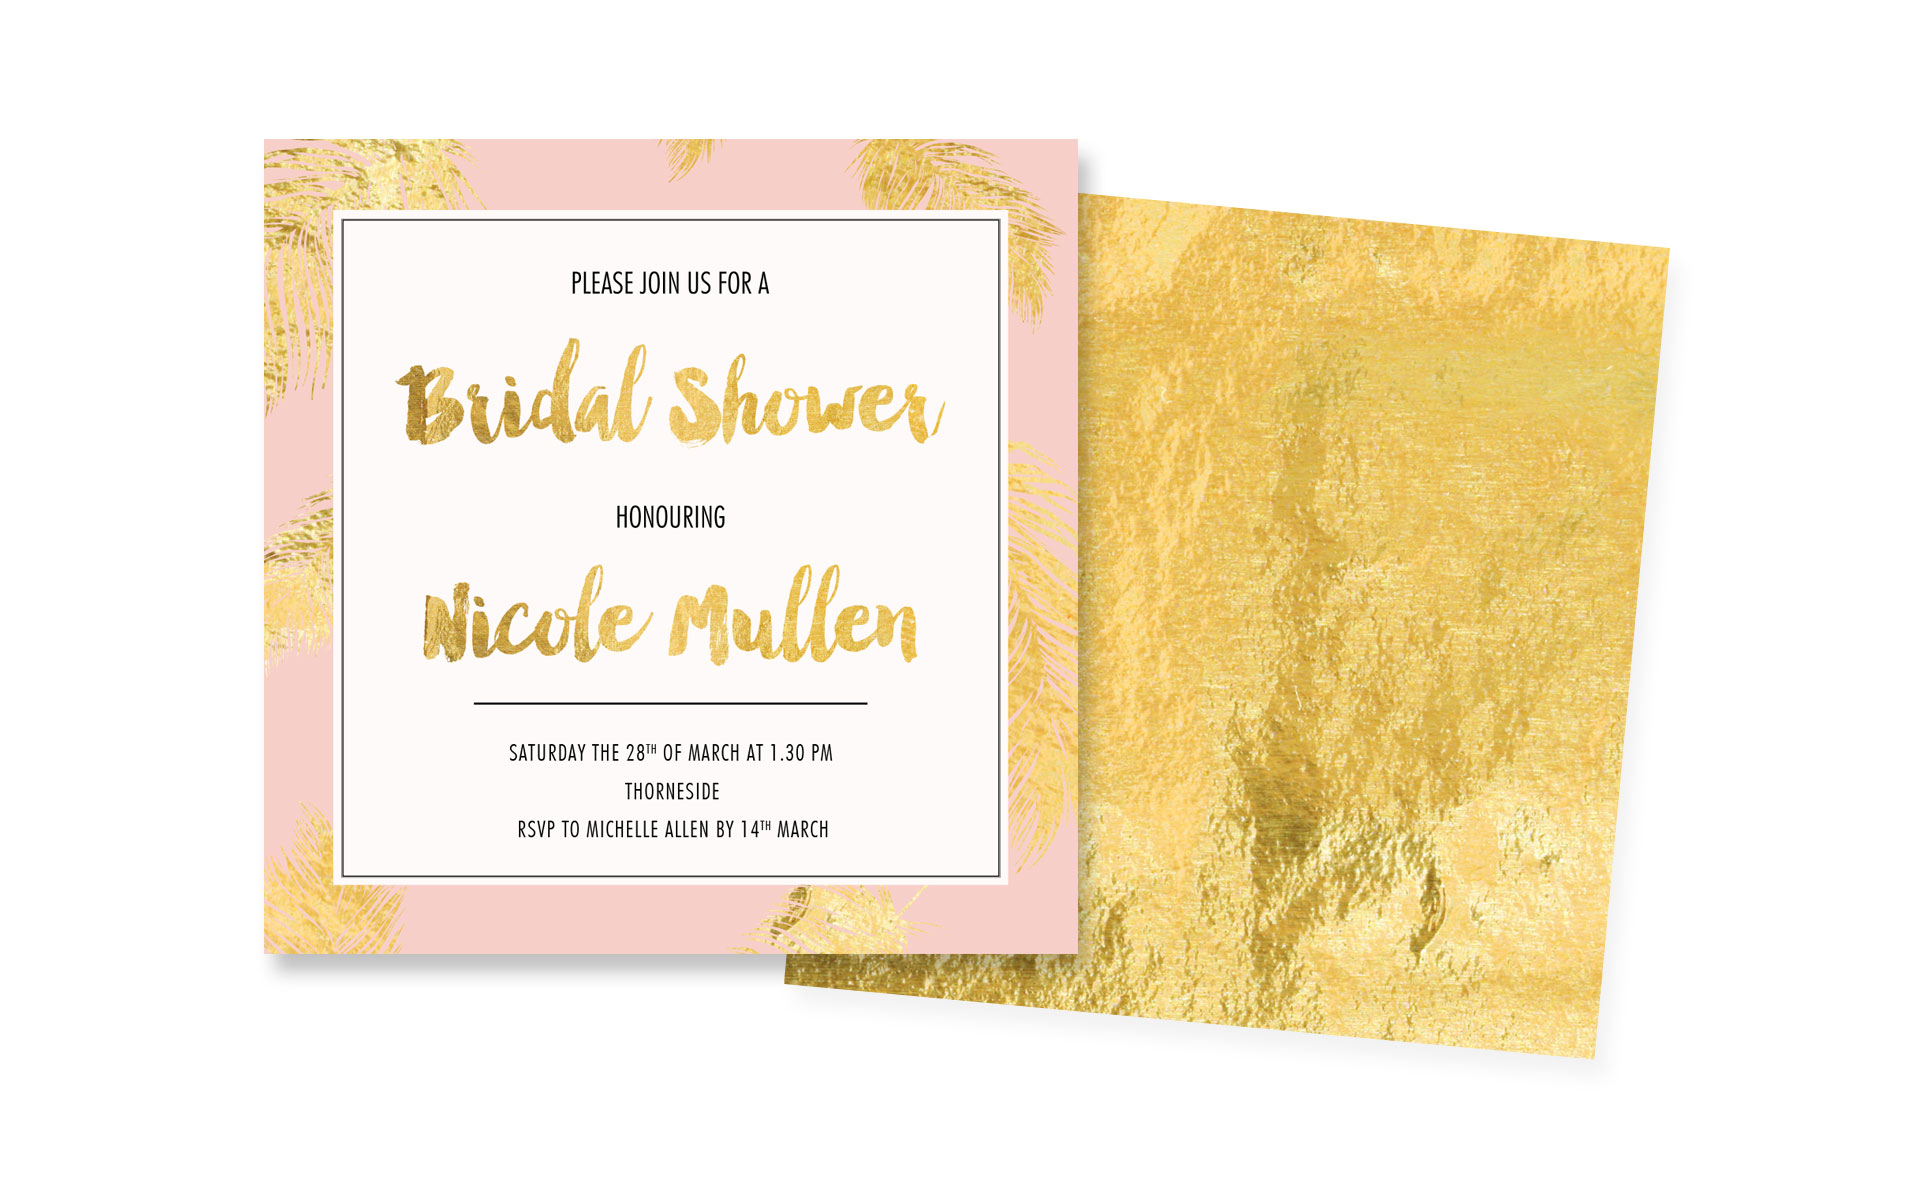 nics-bridal-shower.jpg